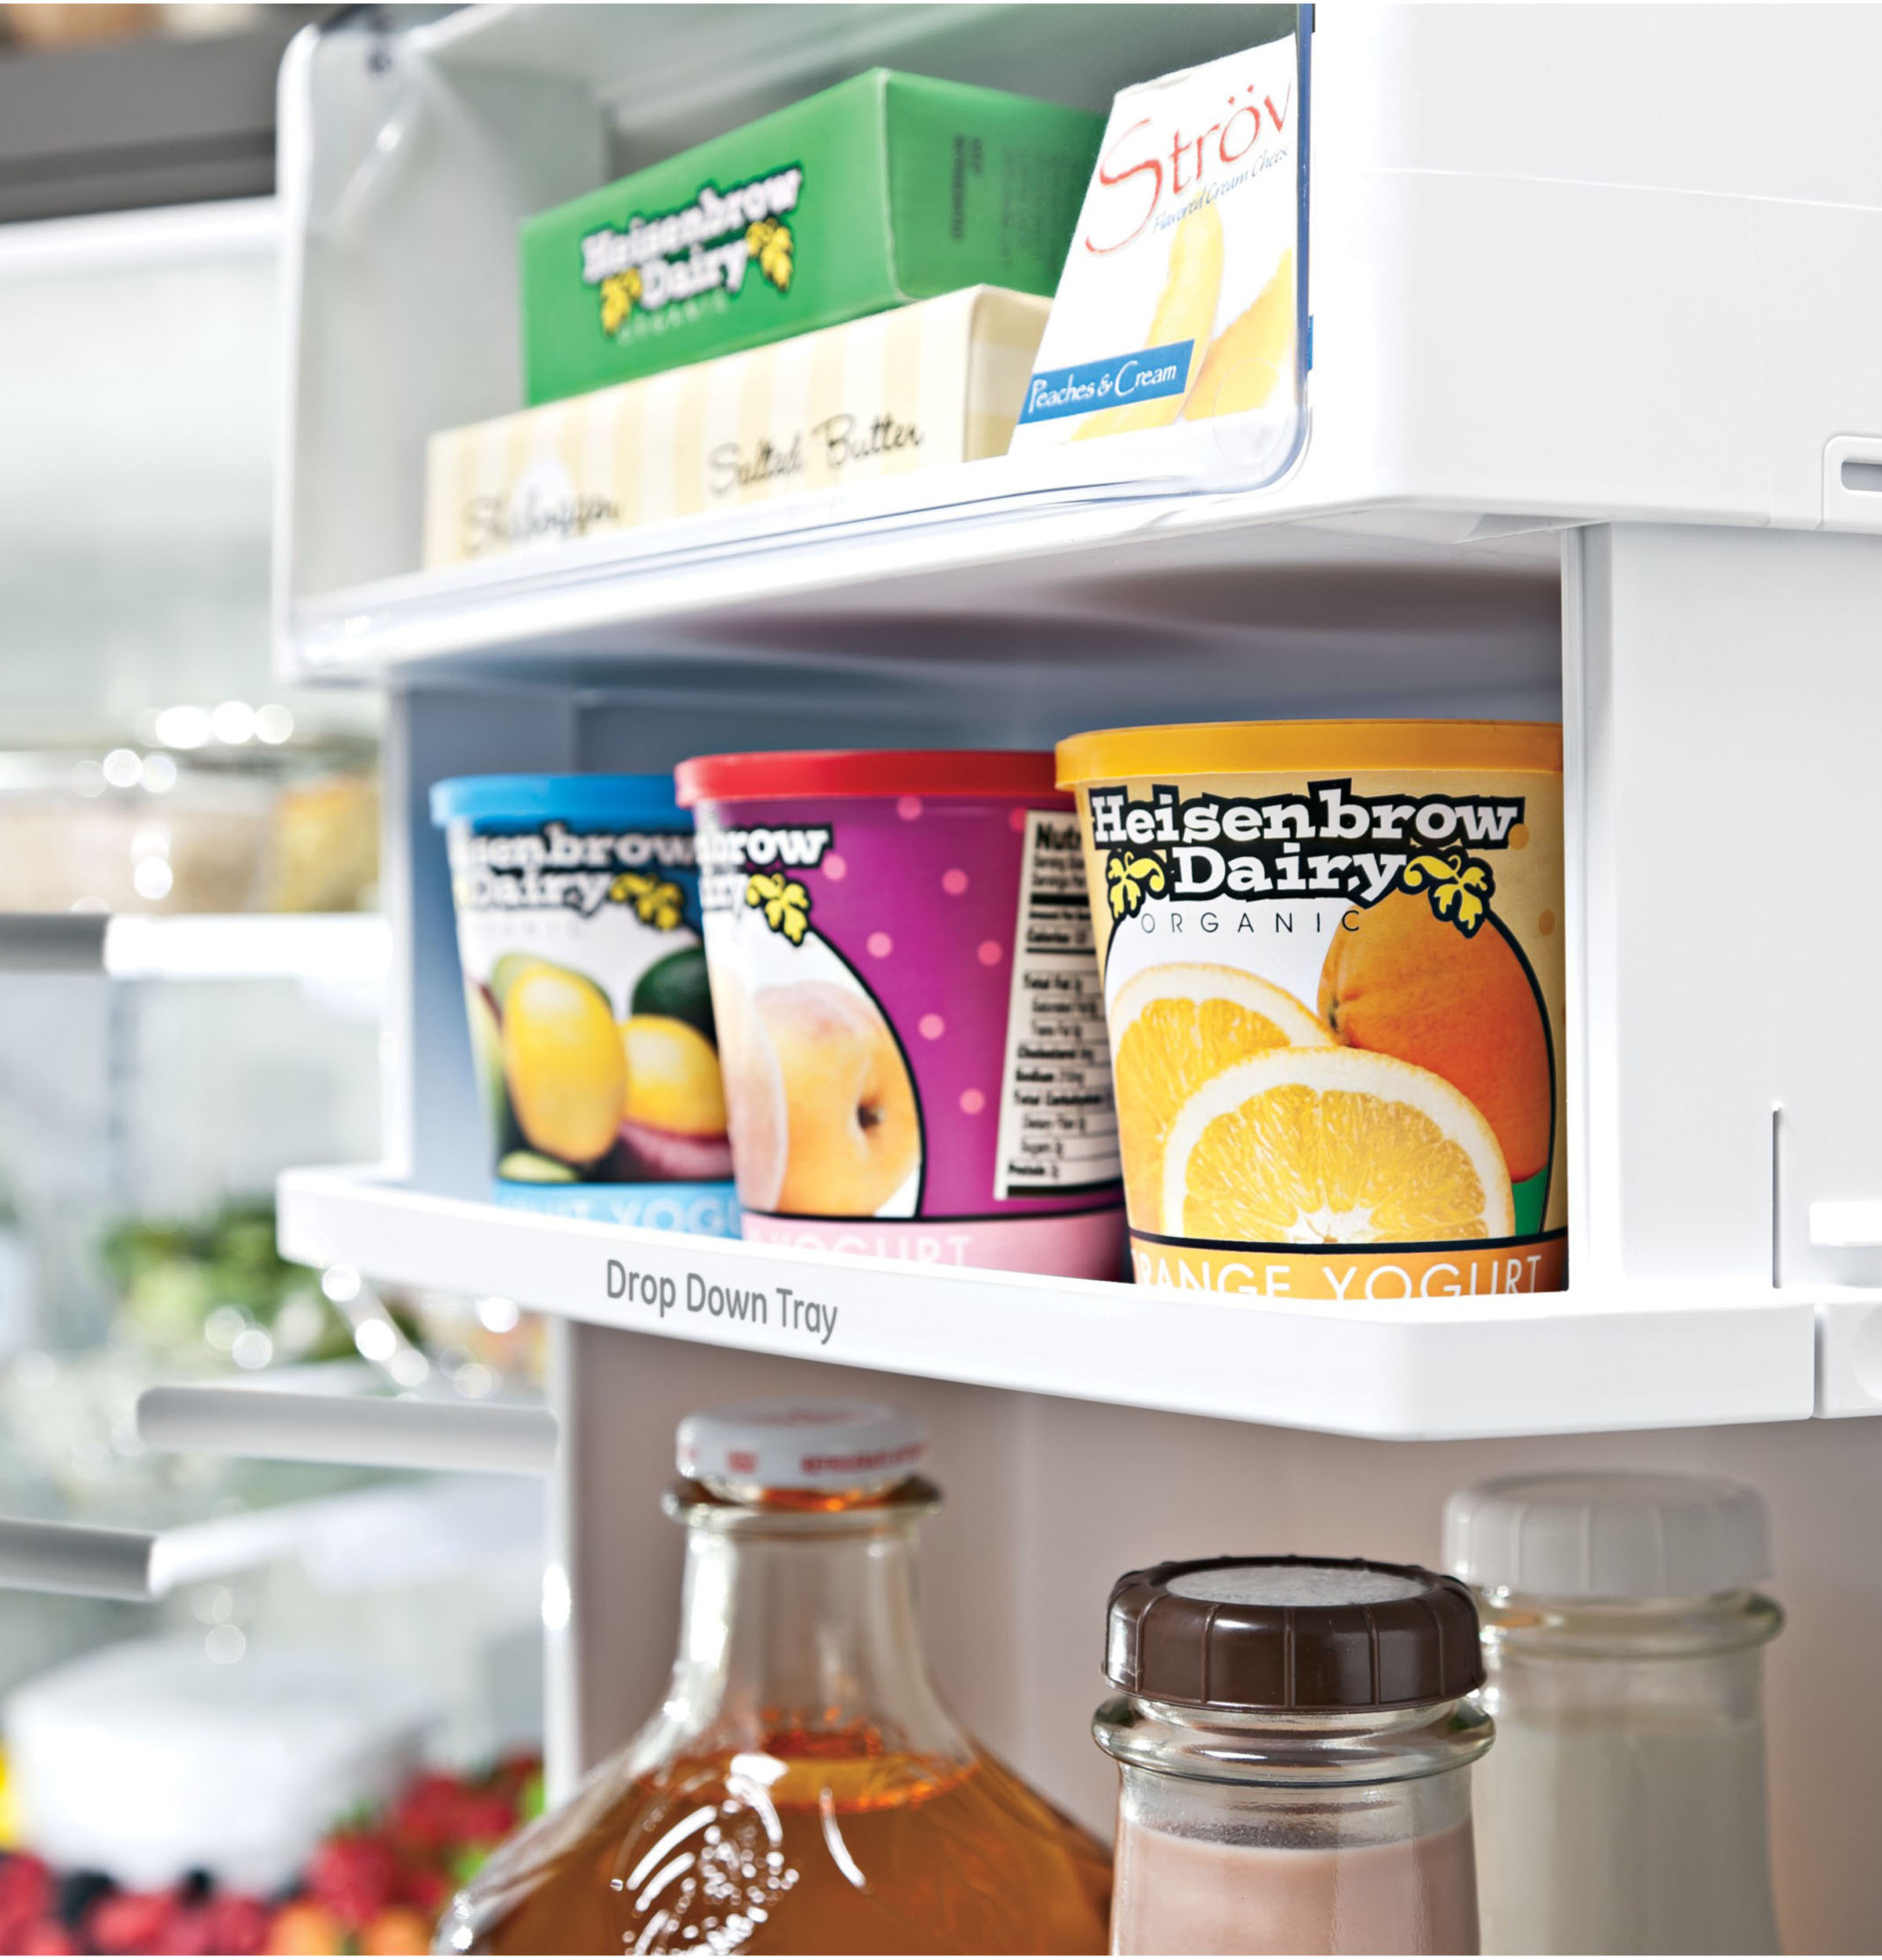 Model: PYE22KYNFS | GE Profile GE Profile™ Series ENERGY STAR® 22.1 Cu. Ft. Counter-Depth French-Door Refrigerator with Hands-Free AutoFill